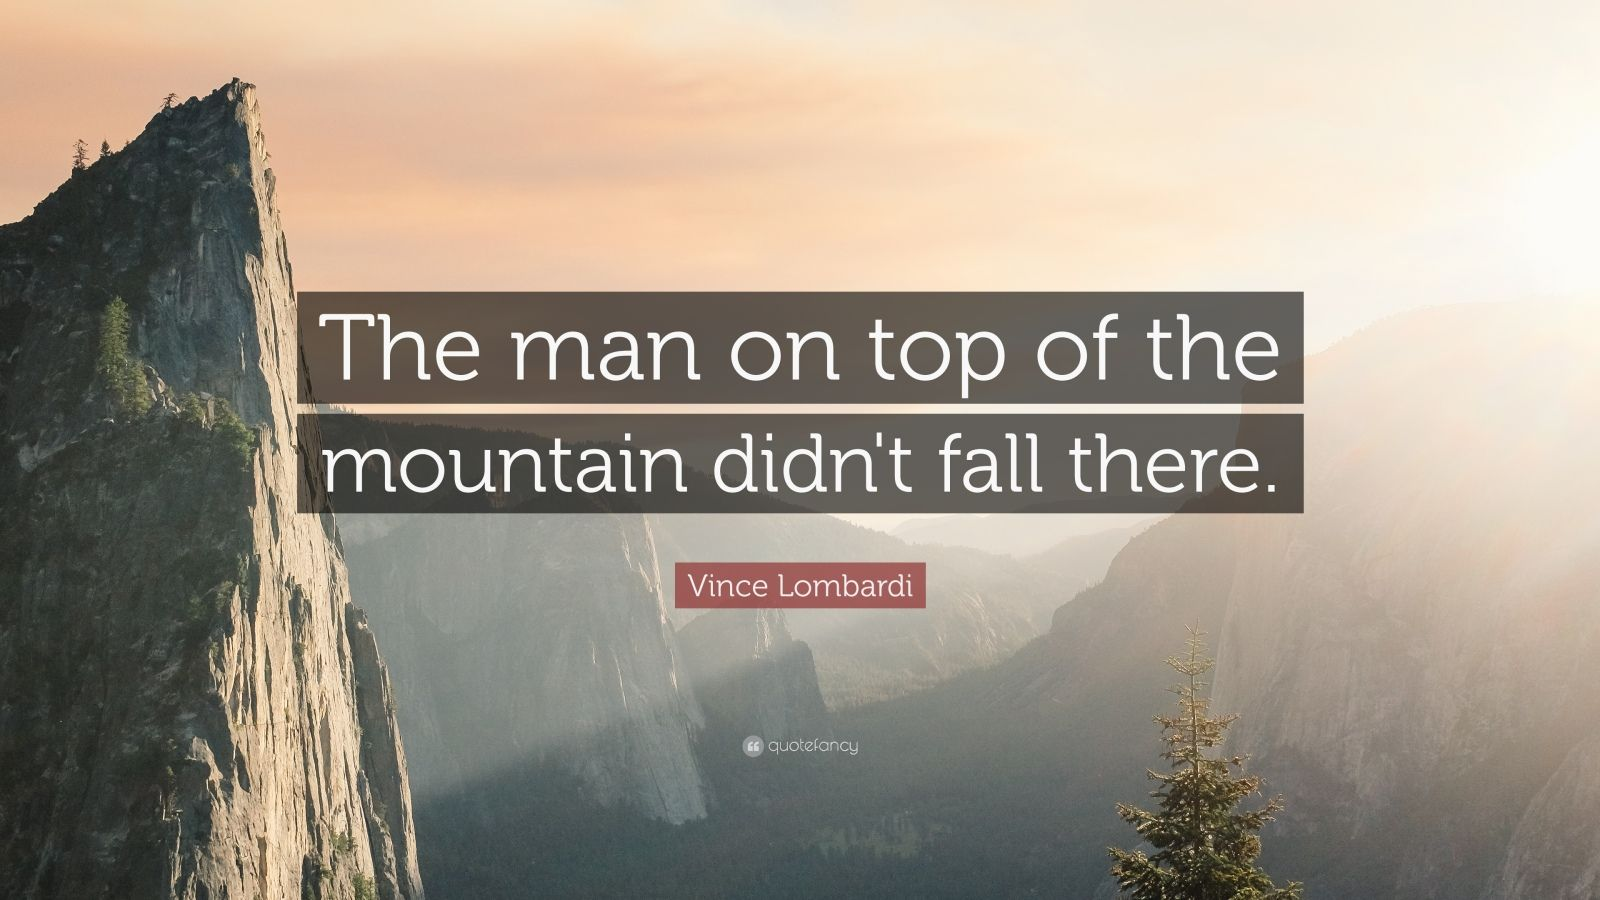 Fall Of Quotations Wallpapers Vince Lombardi Quote The Man On Top Of The Mountain Didn